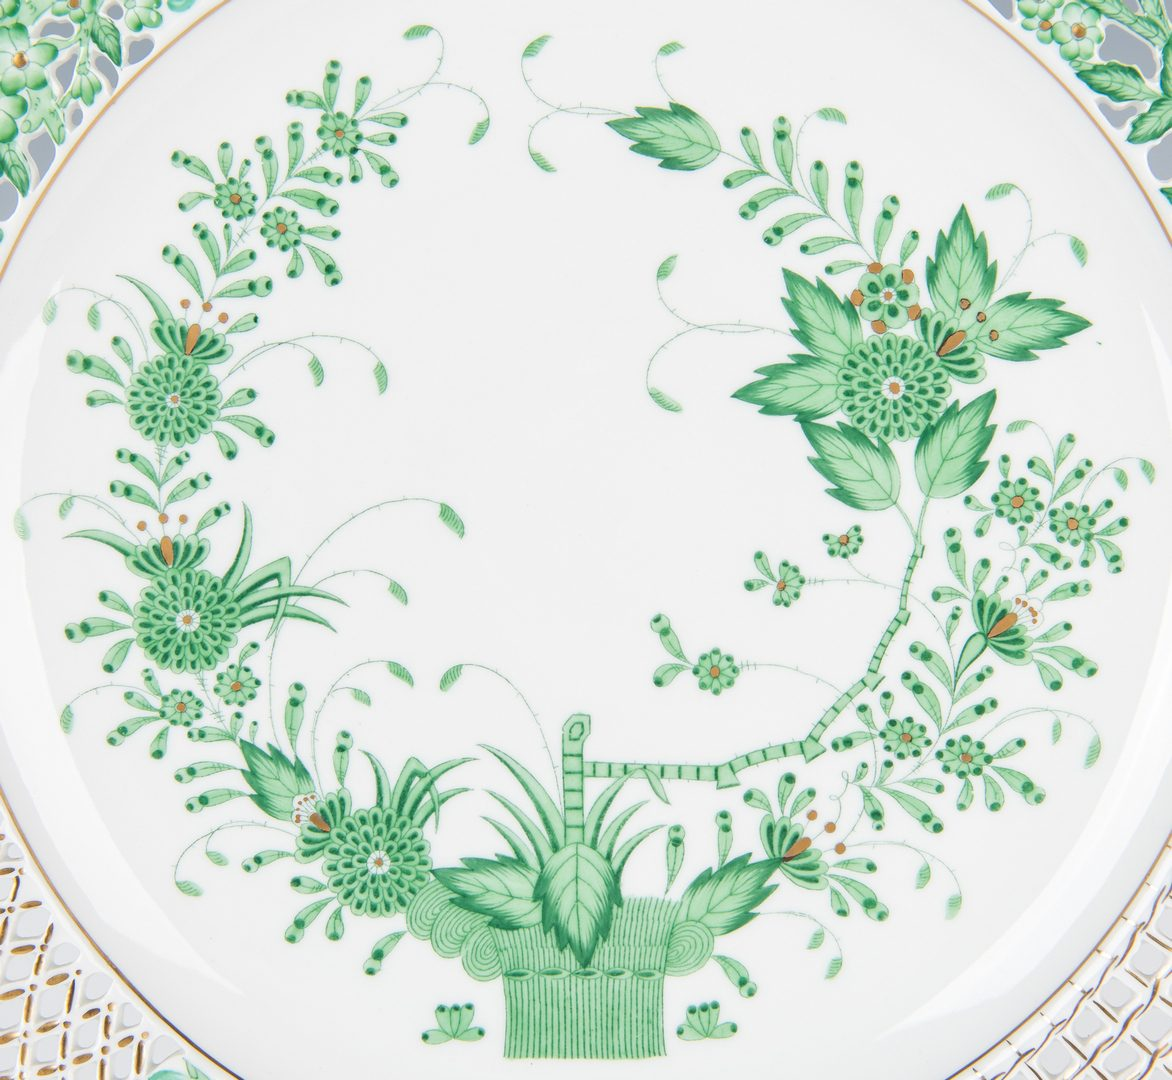 Lot 49: 2 Herend Reticulated Porcelain Chargers